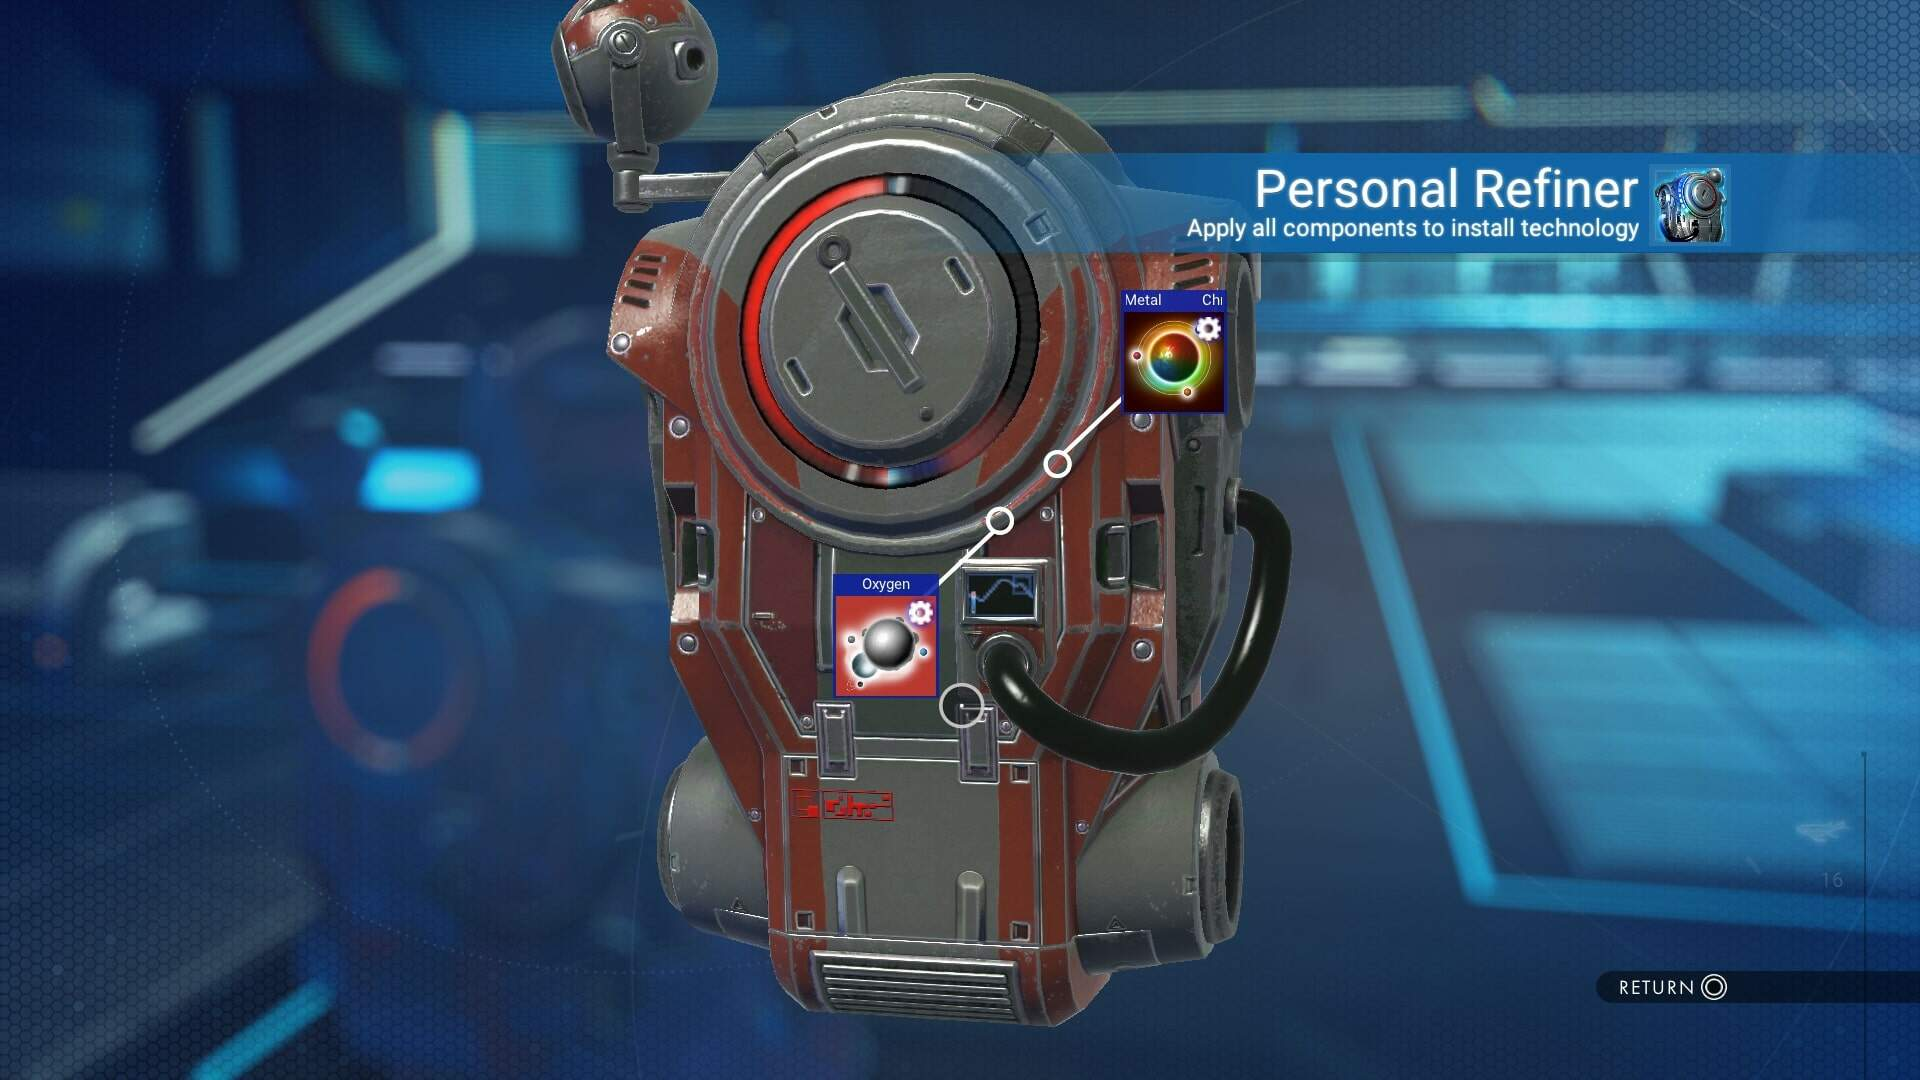 How to Get the Personal Refiner in No Man's Sky